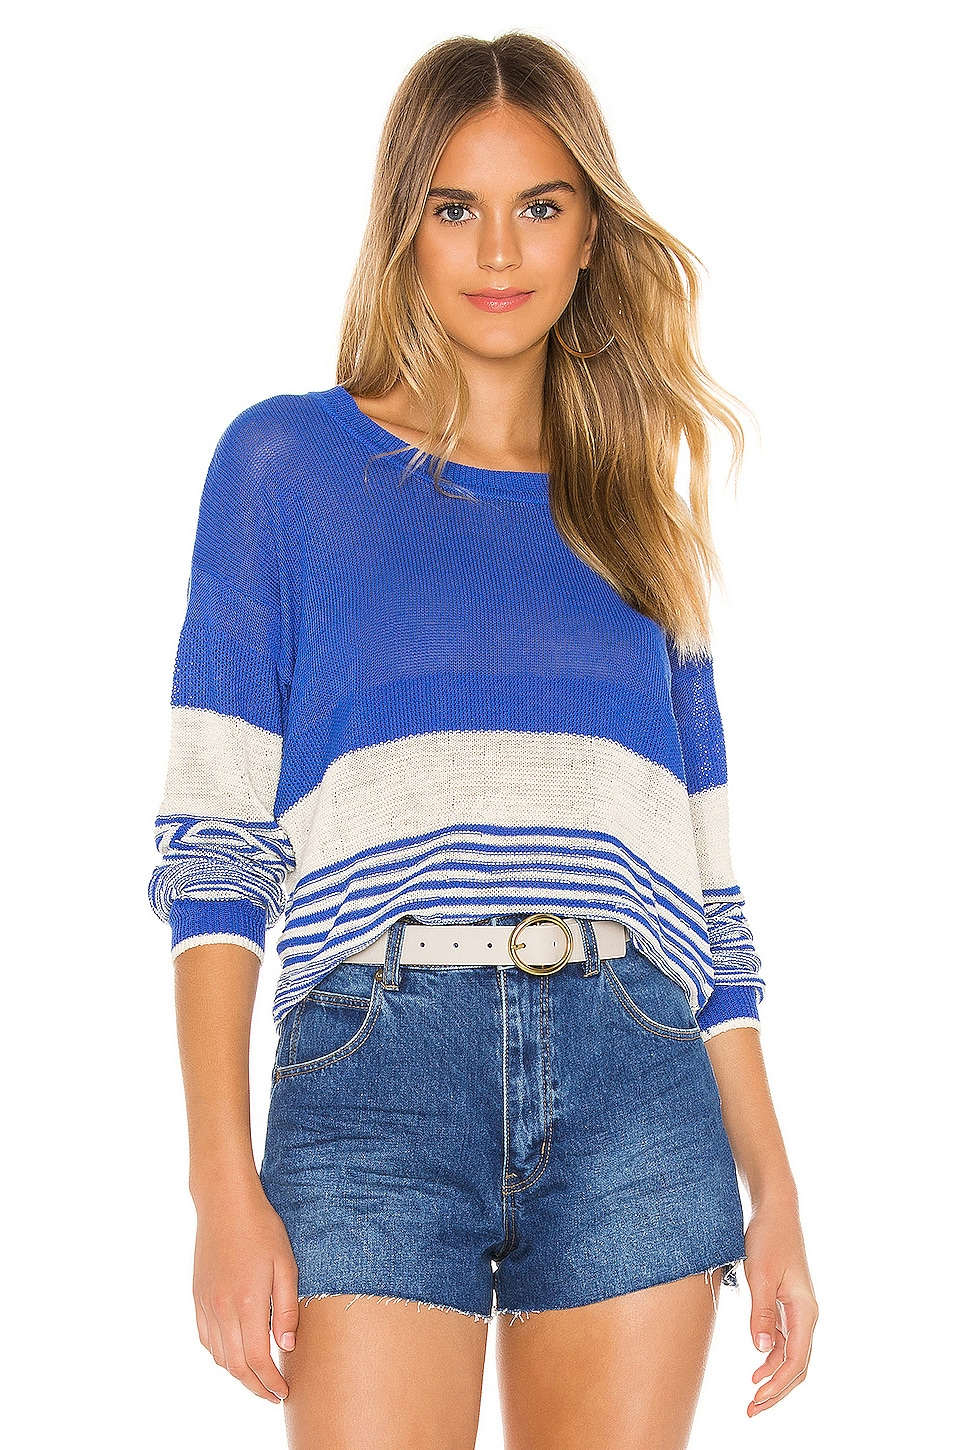 Splendid Cove Pullover in Heritage Blue & Natural